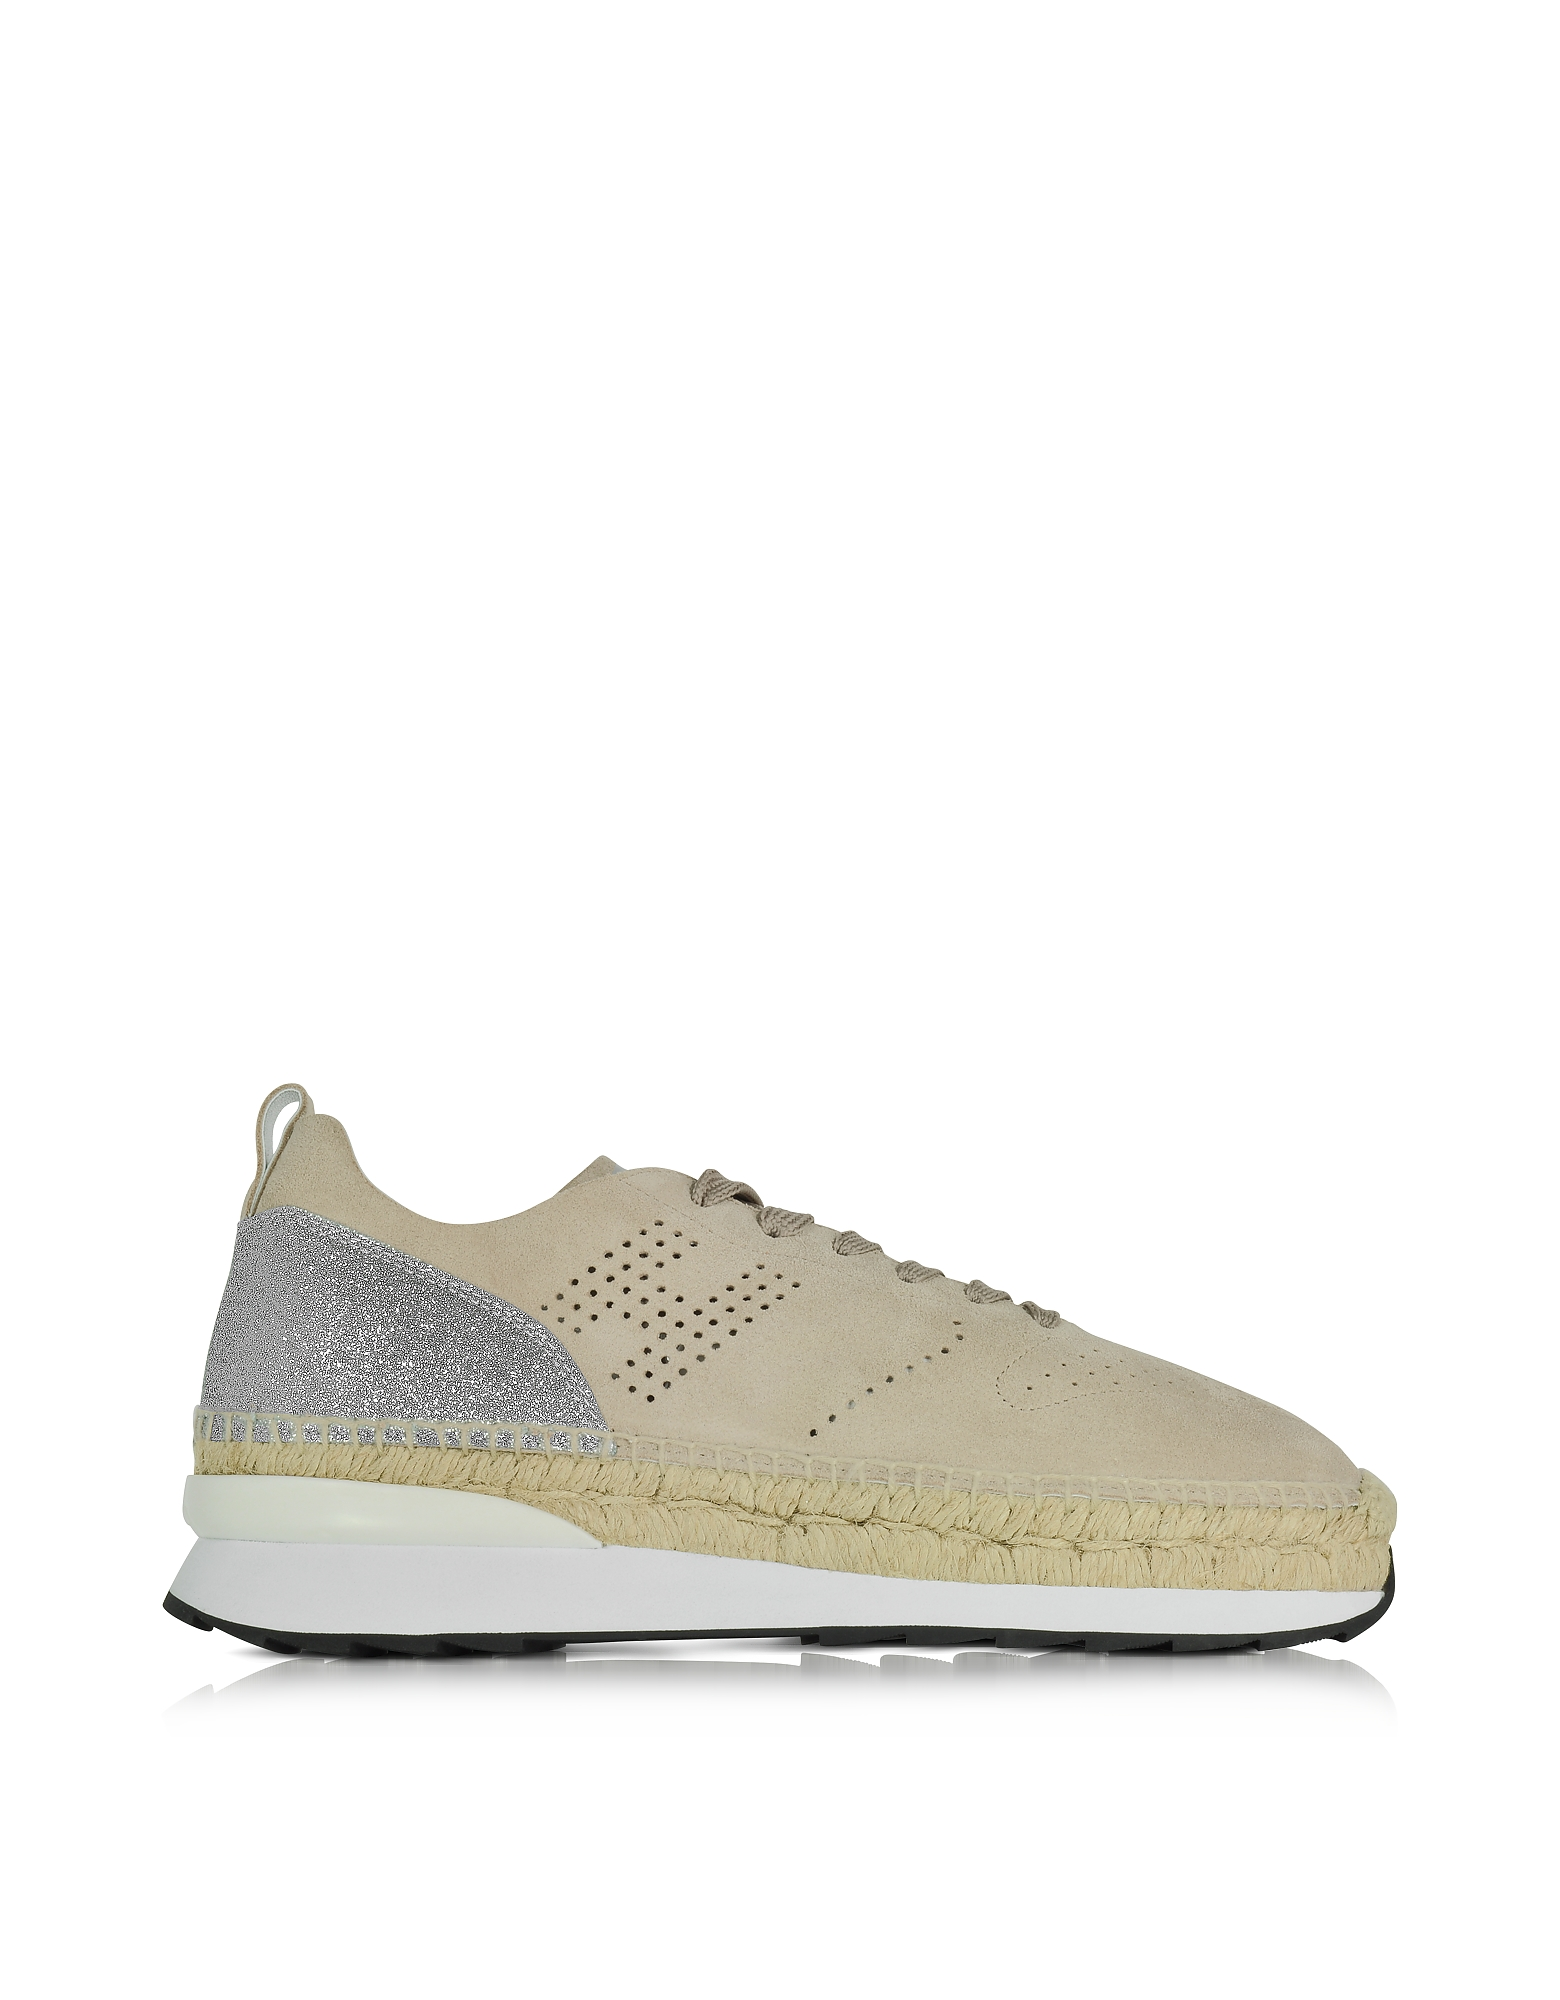 Hogan Shoes, Beige Perforated Suede Lace Up Sneakers w/Glitter